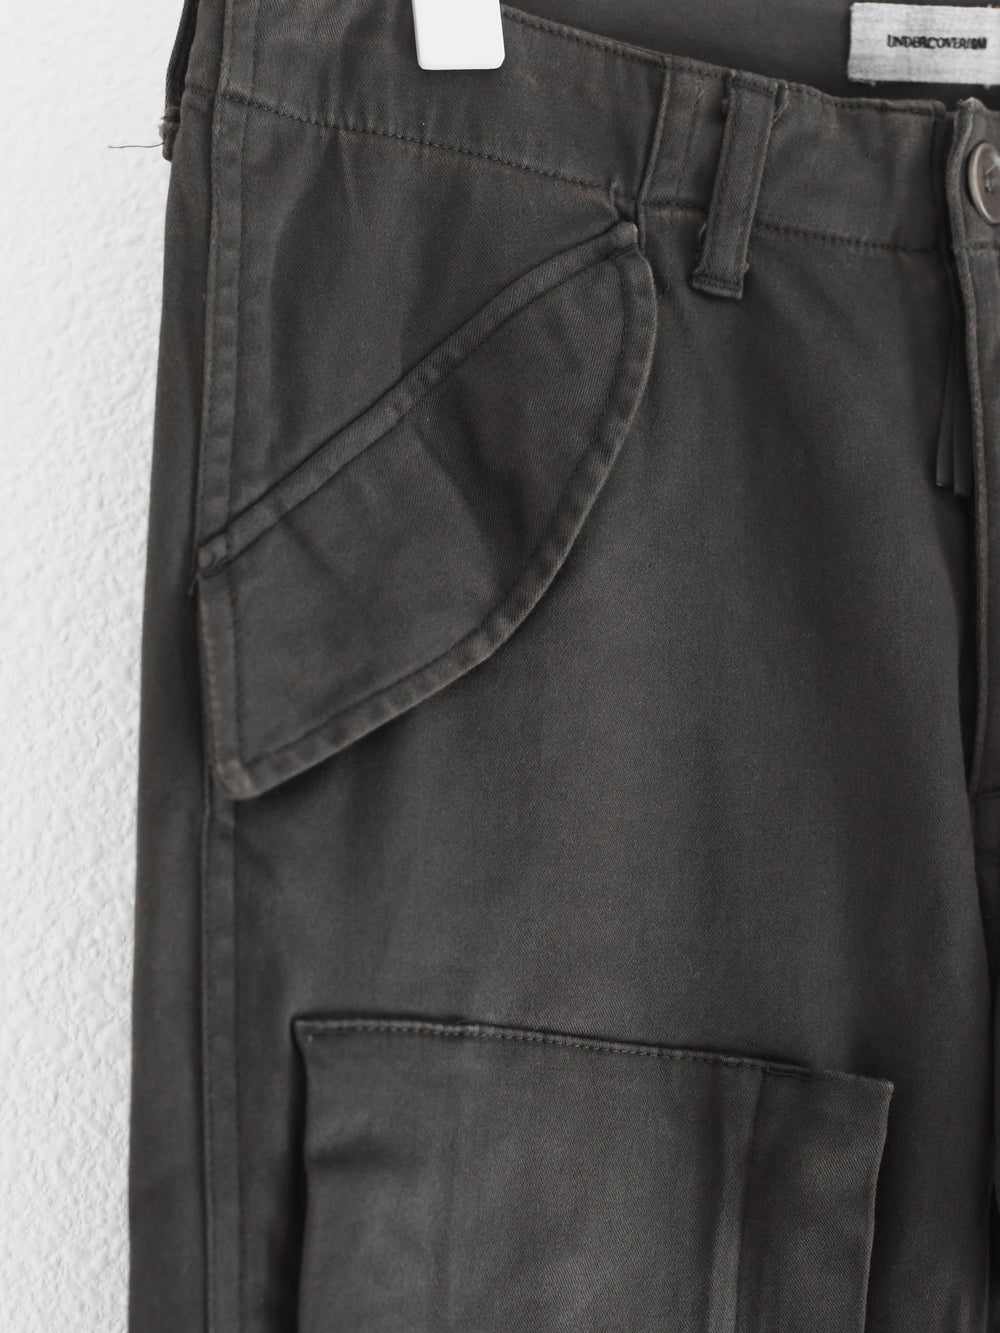 Undercover AW13 Anatomicouture Zip Cargo Pants